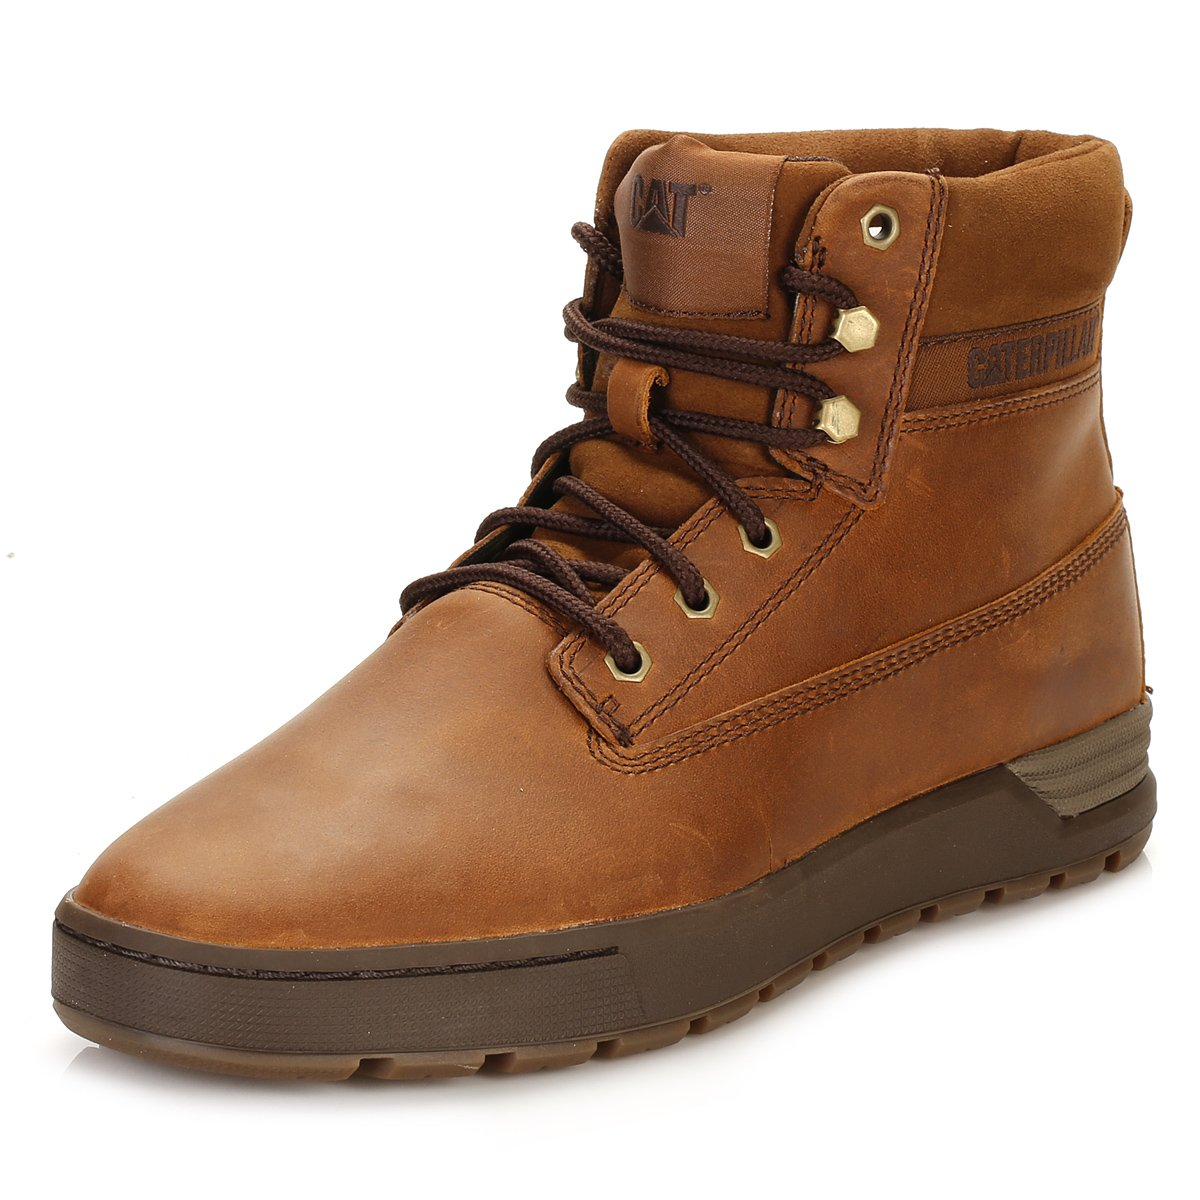 a6e332ad525 Caterpillar Mens Brown Ryker Boots: Amazon.co.uk: Shoes & Bags